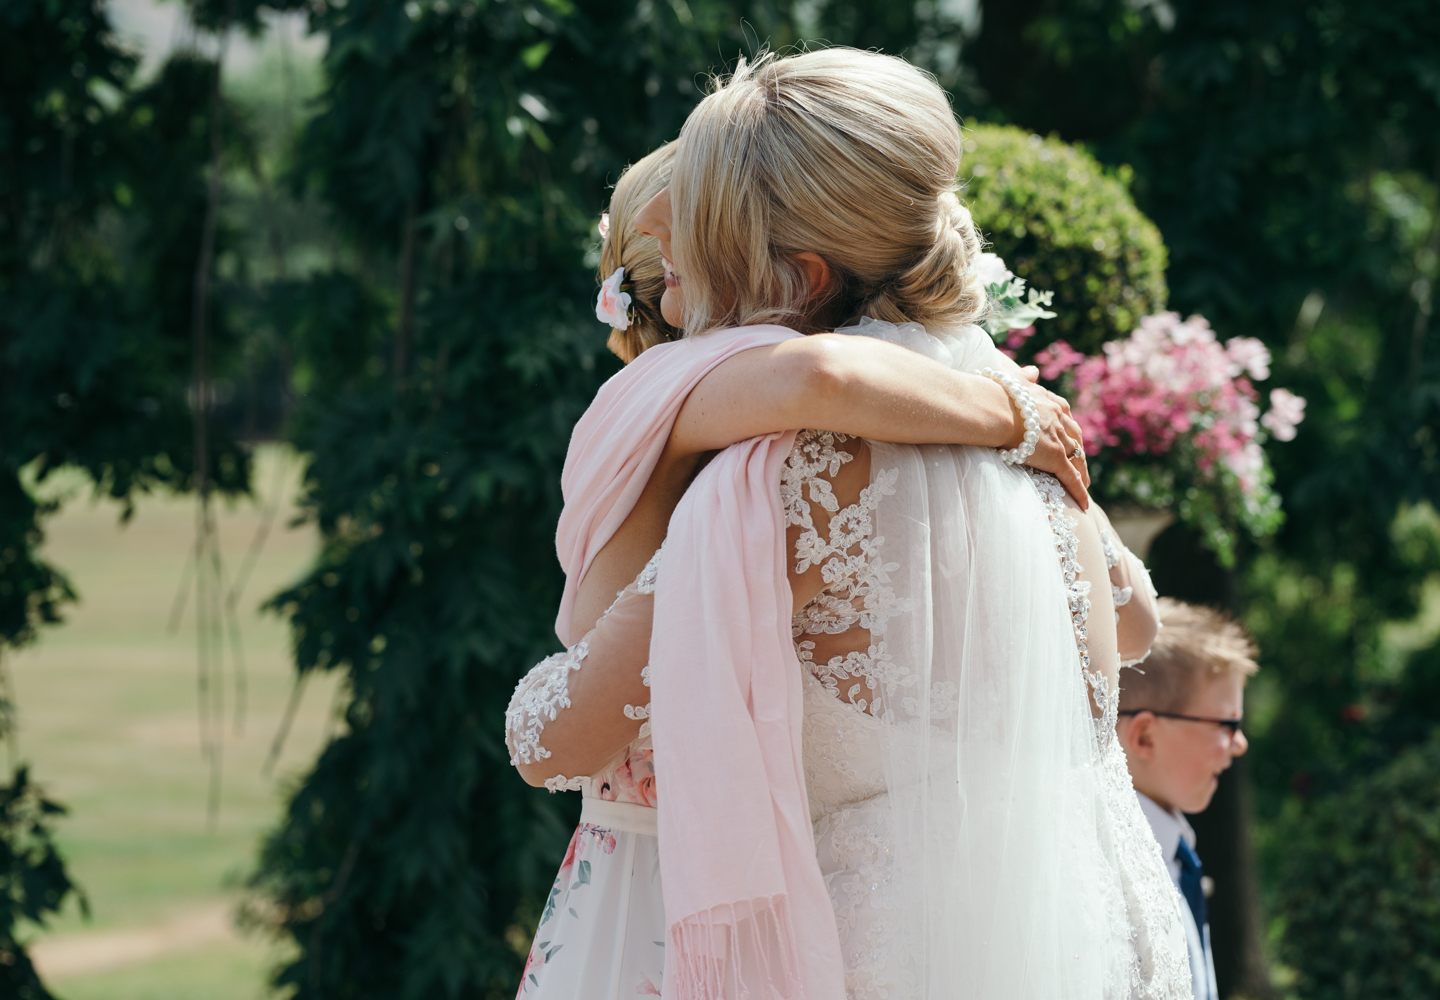 The bride giving her mum a hug